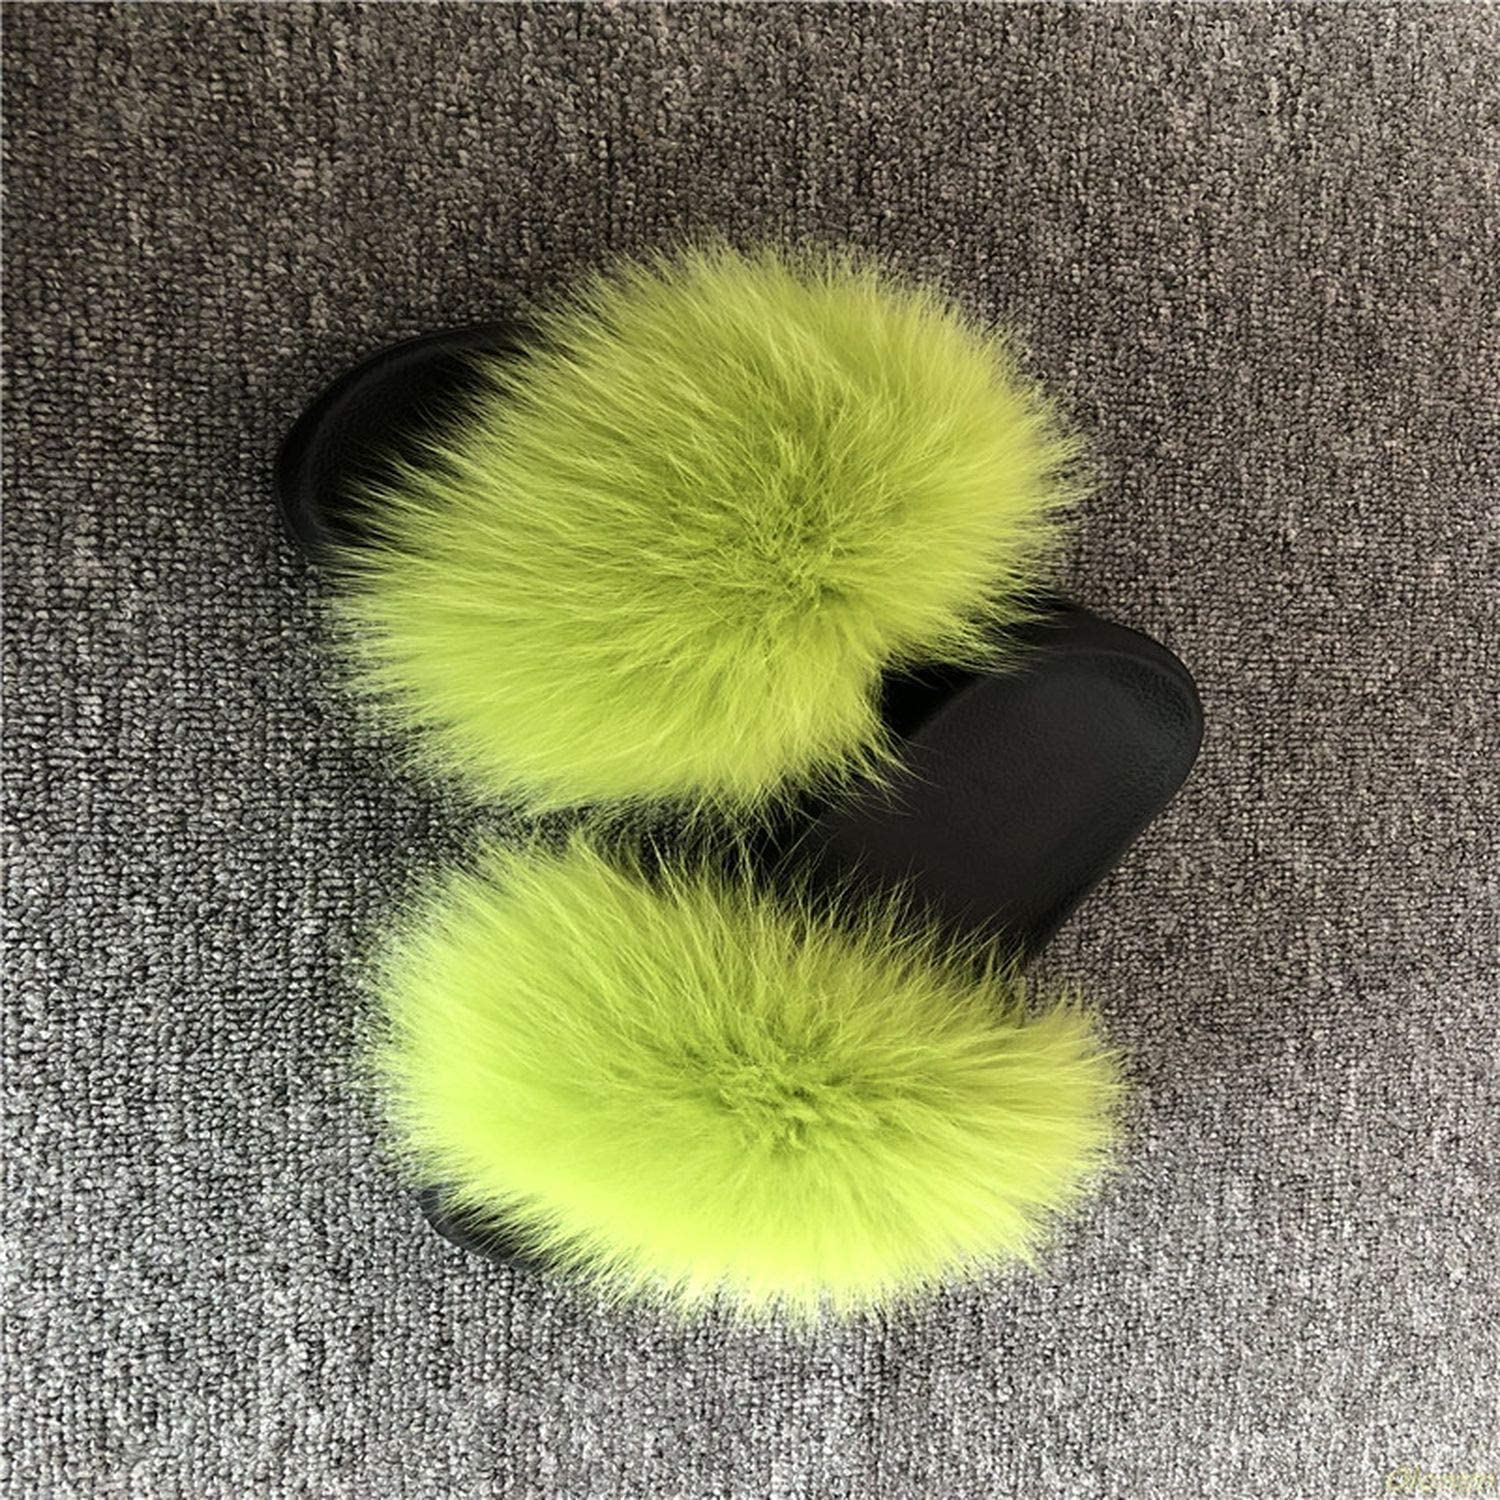 Fox Hair Slippers Women Fur Home Fluffy Sliders Plush Furry Summer Flats Sweet Ladies Shoes Large Size 45 Cute Pantufas,Fox Hair,10